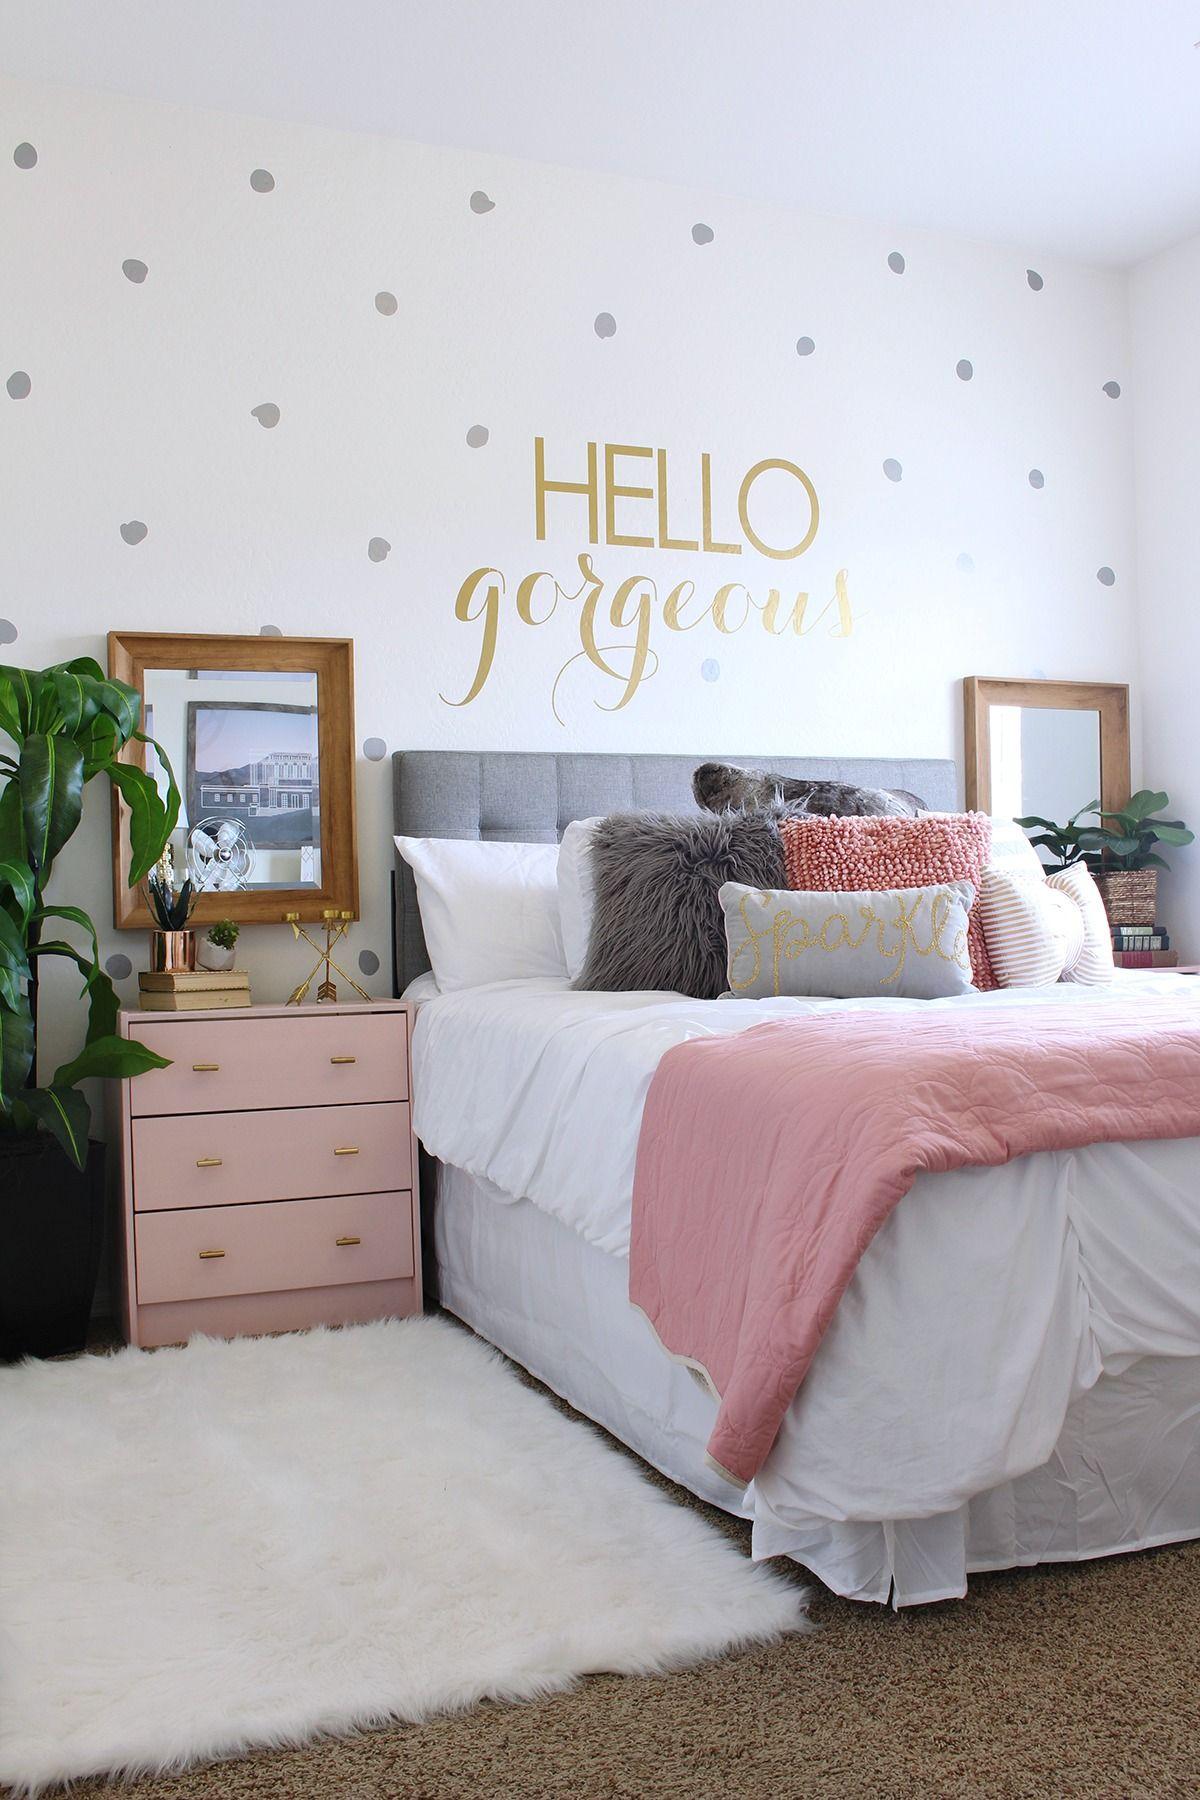 Teen Room Makeover ideas - .classyclutter.net | Love the combo of grey and blush pink with the metallic gold! Those pink nightstands are so cute! & Surprise Teen Girl\u0027s Bedroom Makeover in 2018 | Classy Clutter Blog ...